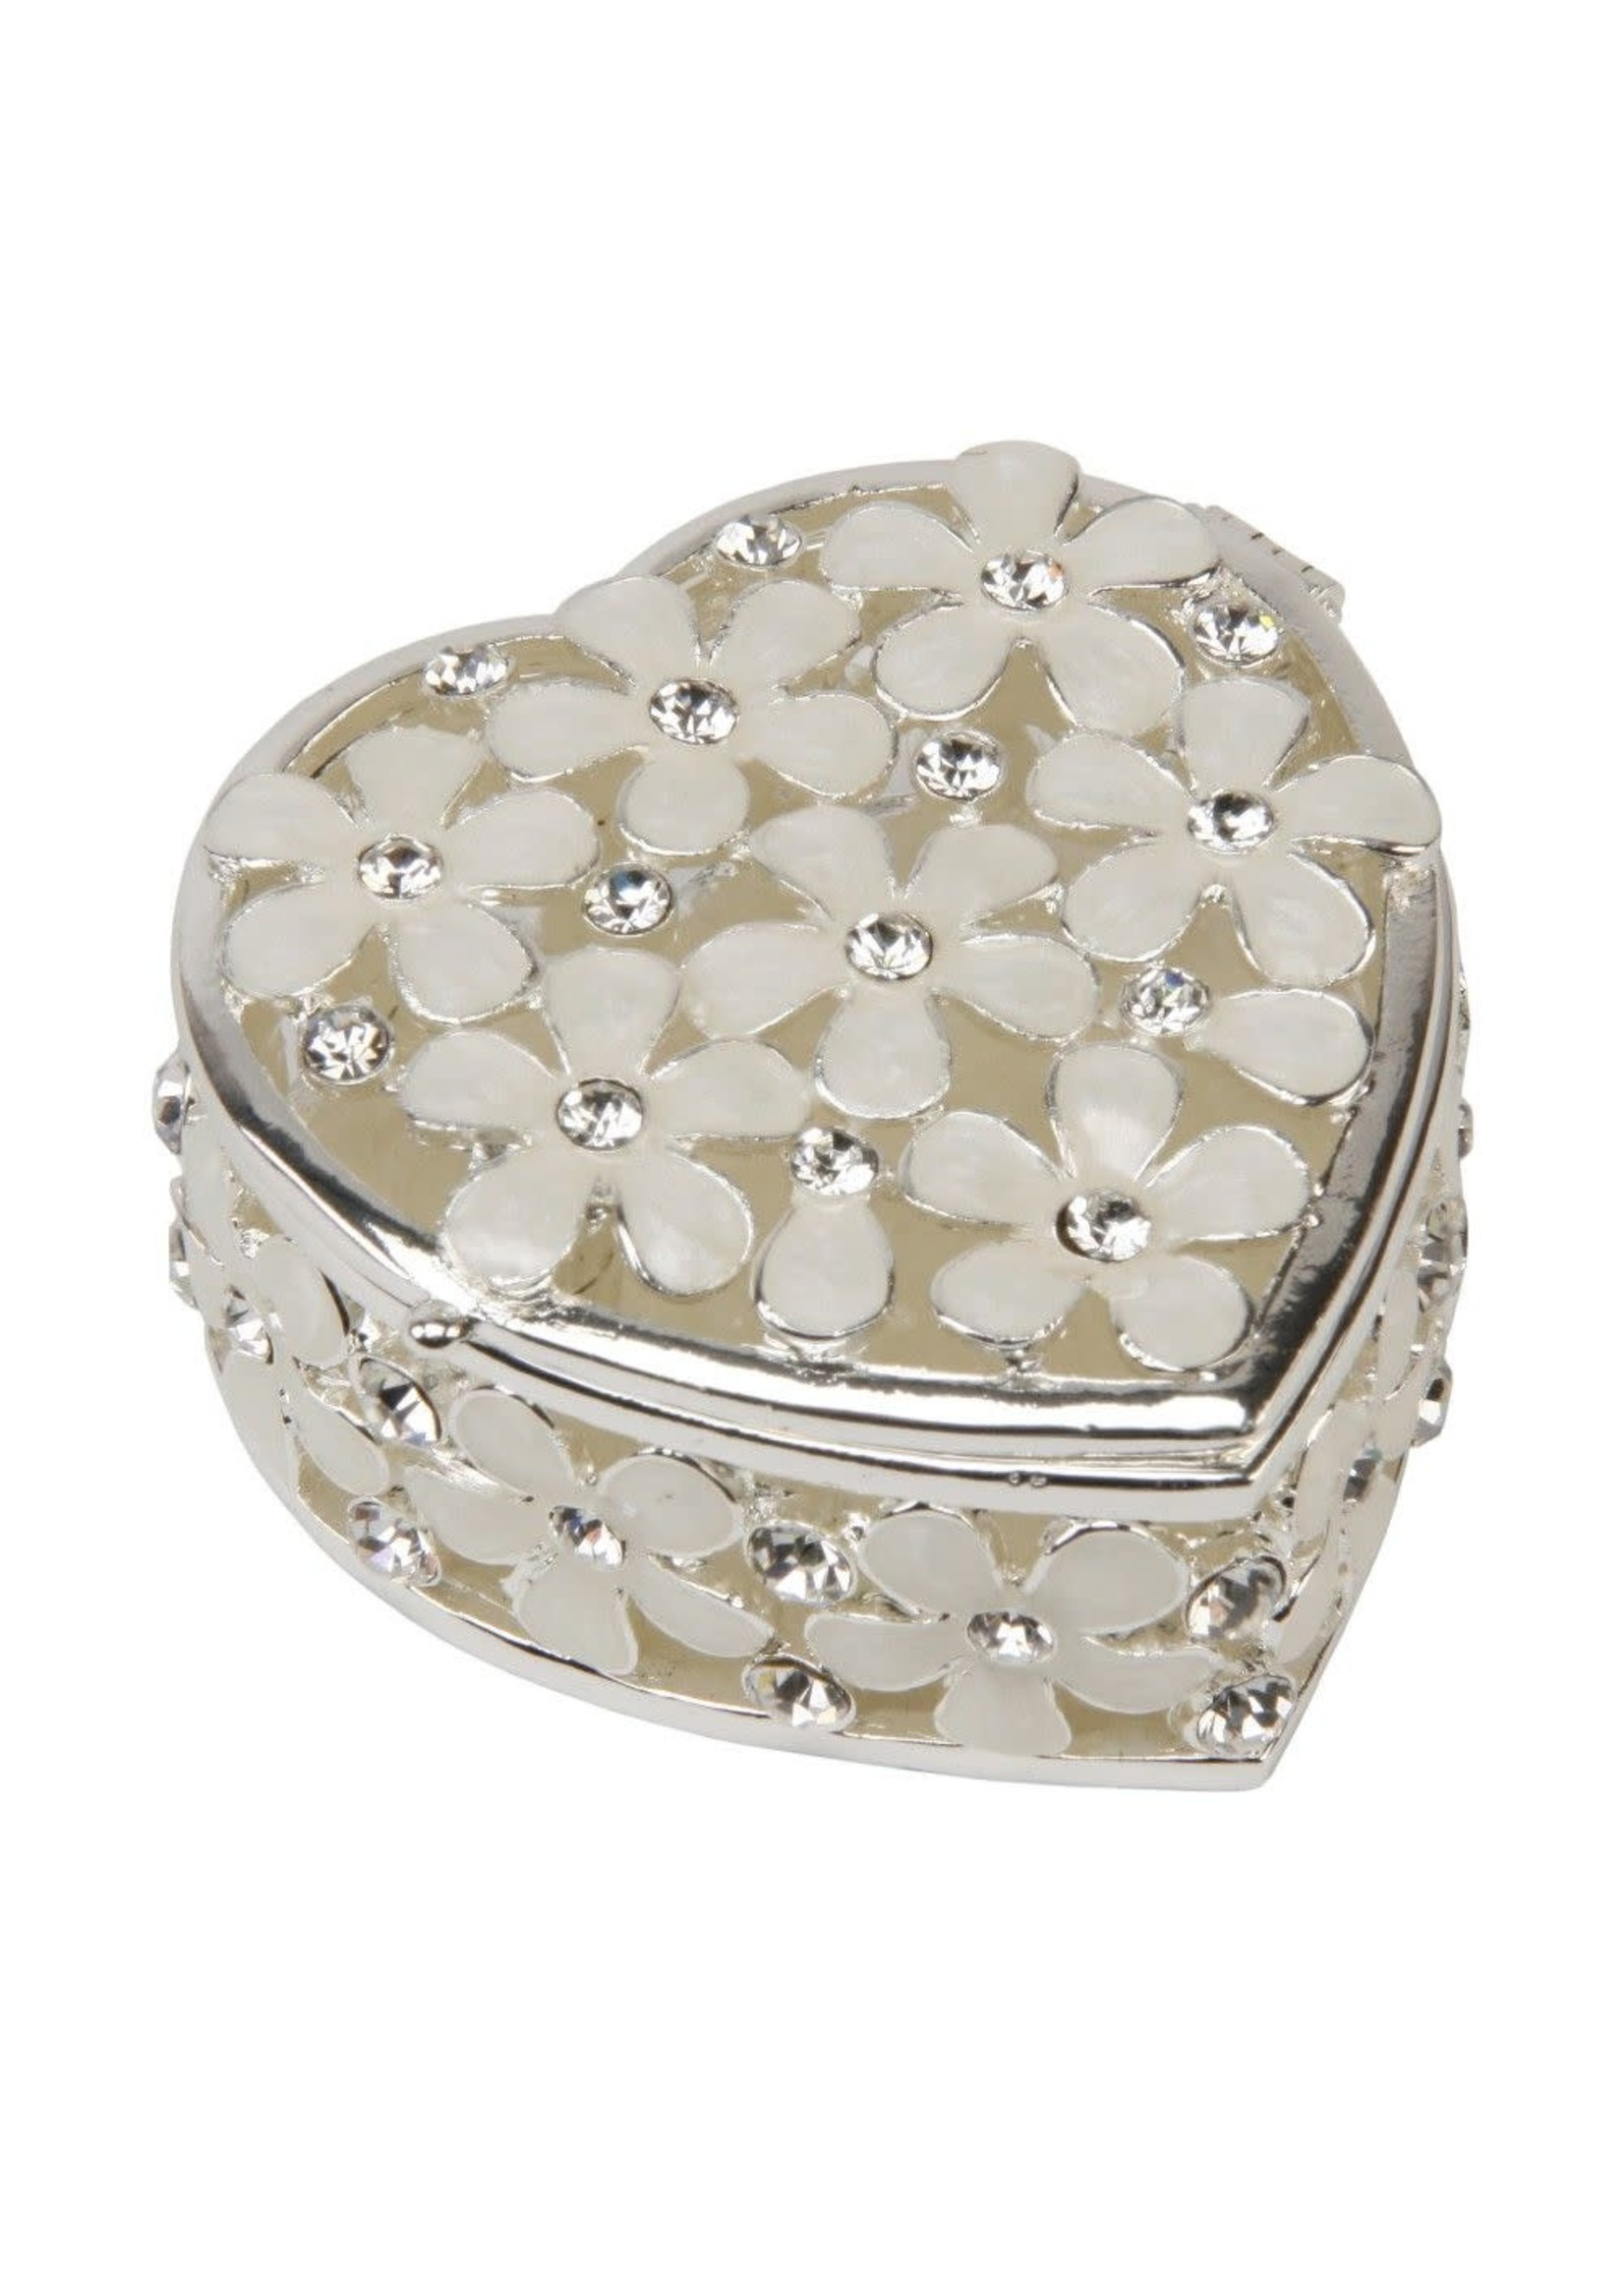 SILVERPLATED TRINKET BOX - FLORAL HEART